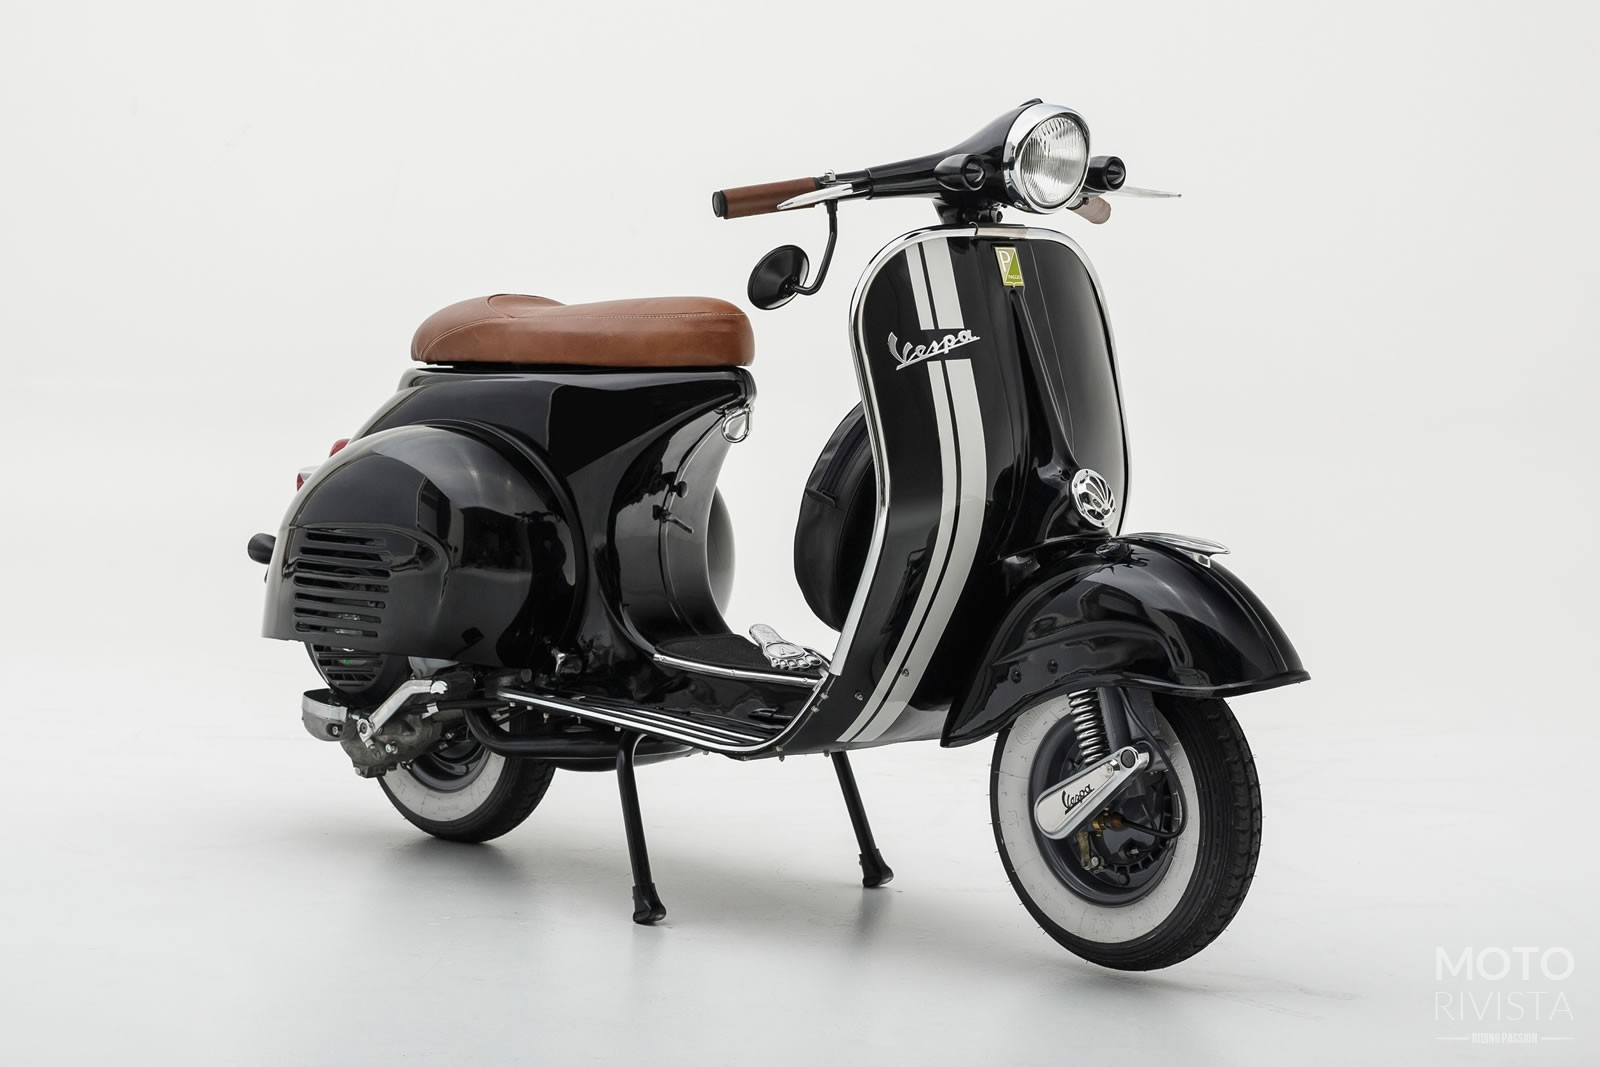 Vespa Electric Scooter >> Piaggio Group Announces Its Vespa Elettrica Electric